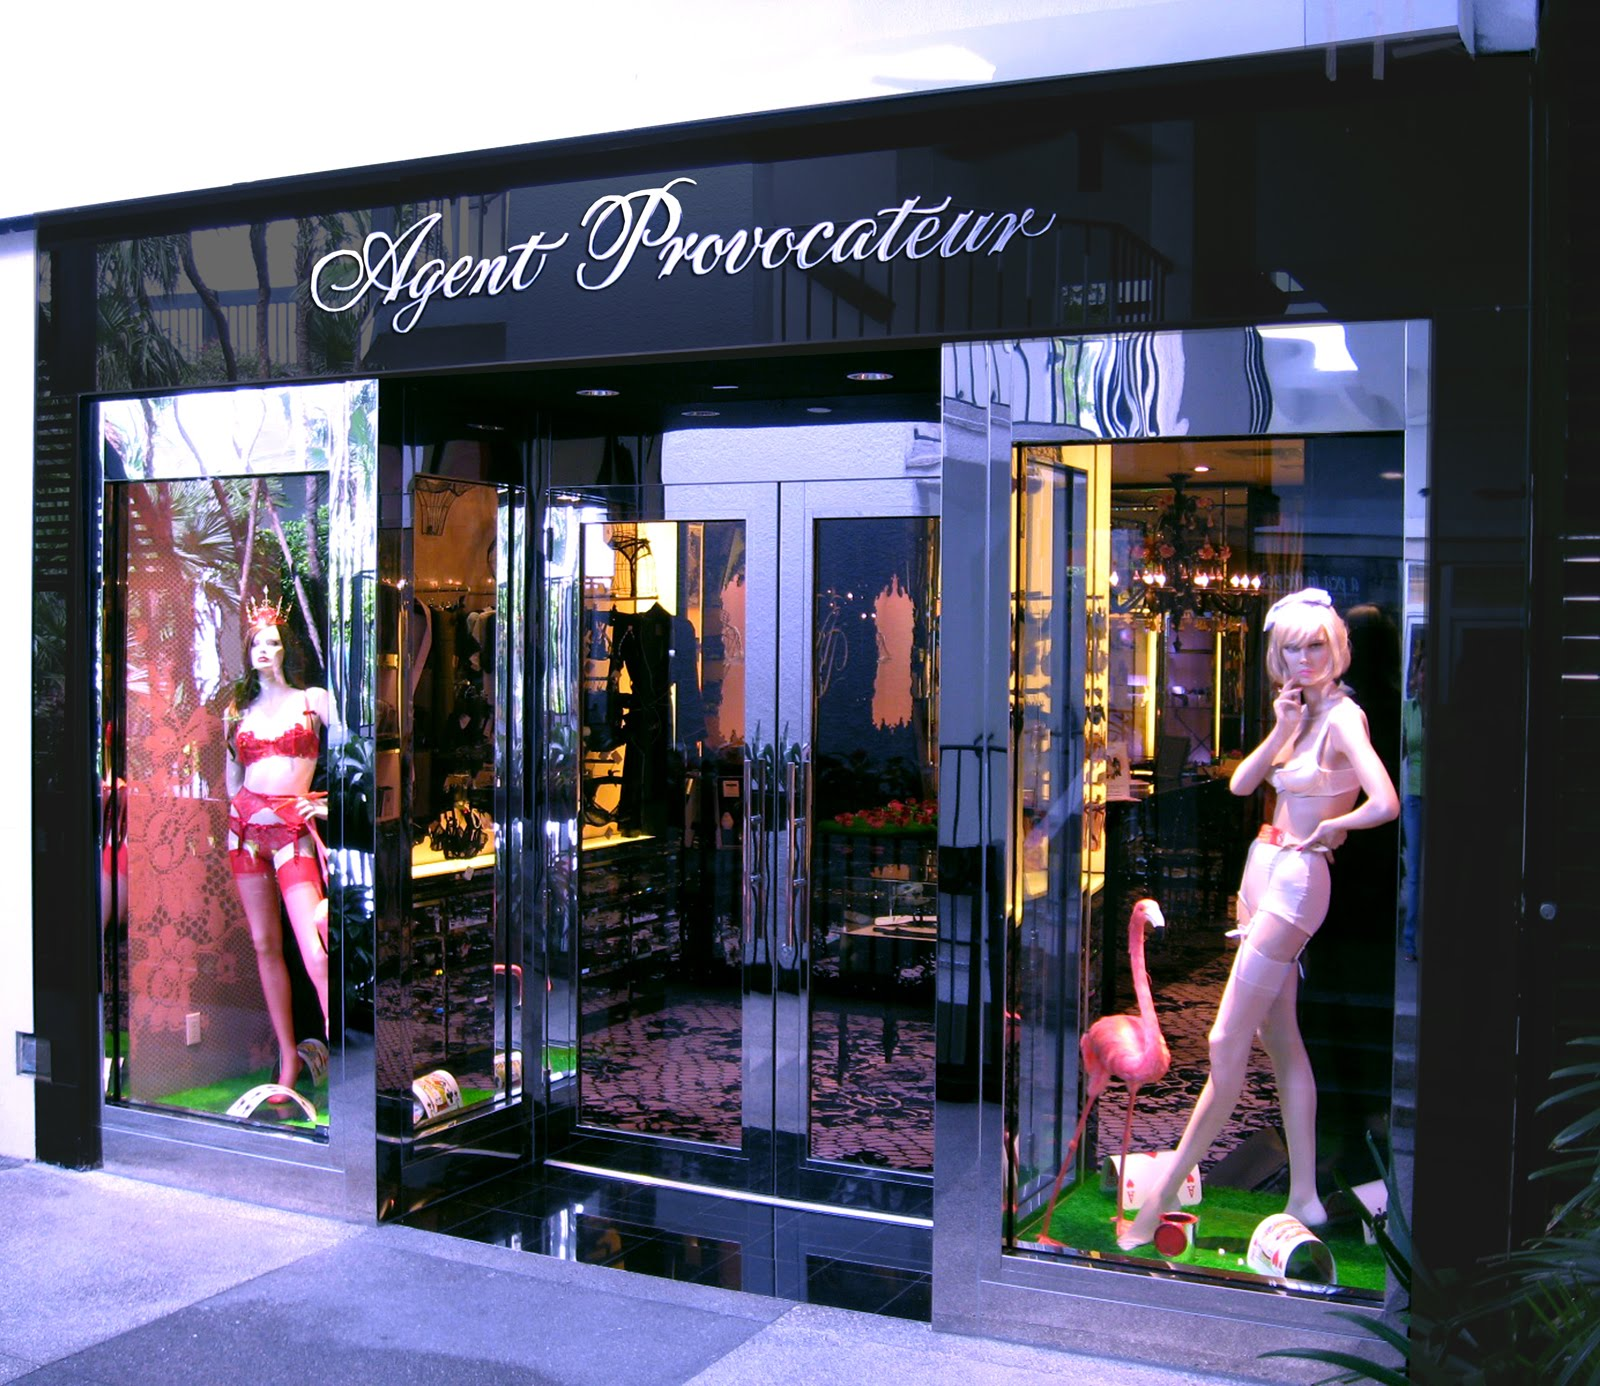 24a41a97bb Zamparelli Architectural Group  Agent Provocateur New Stores